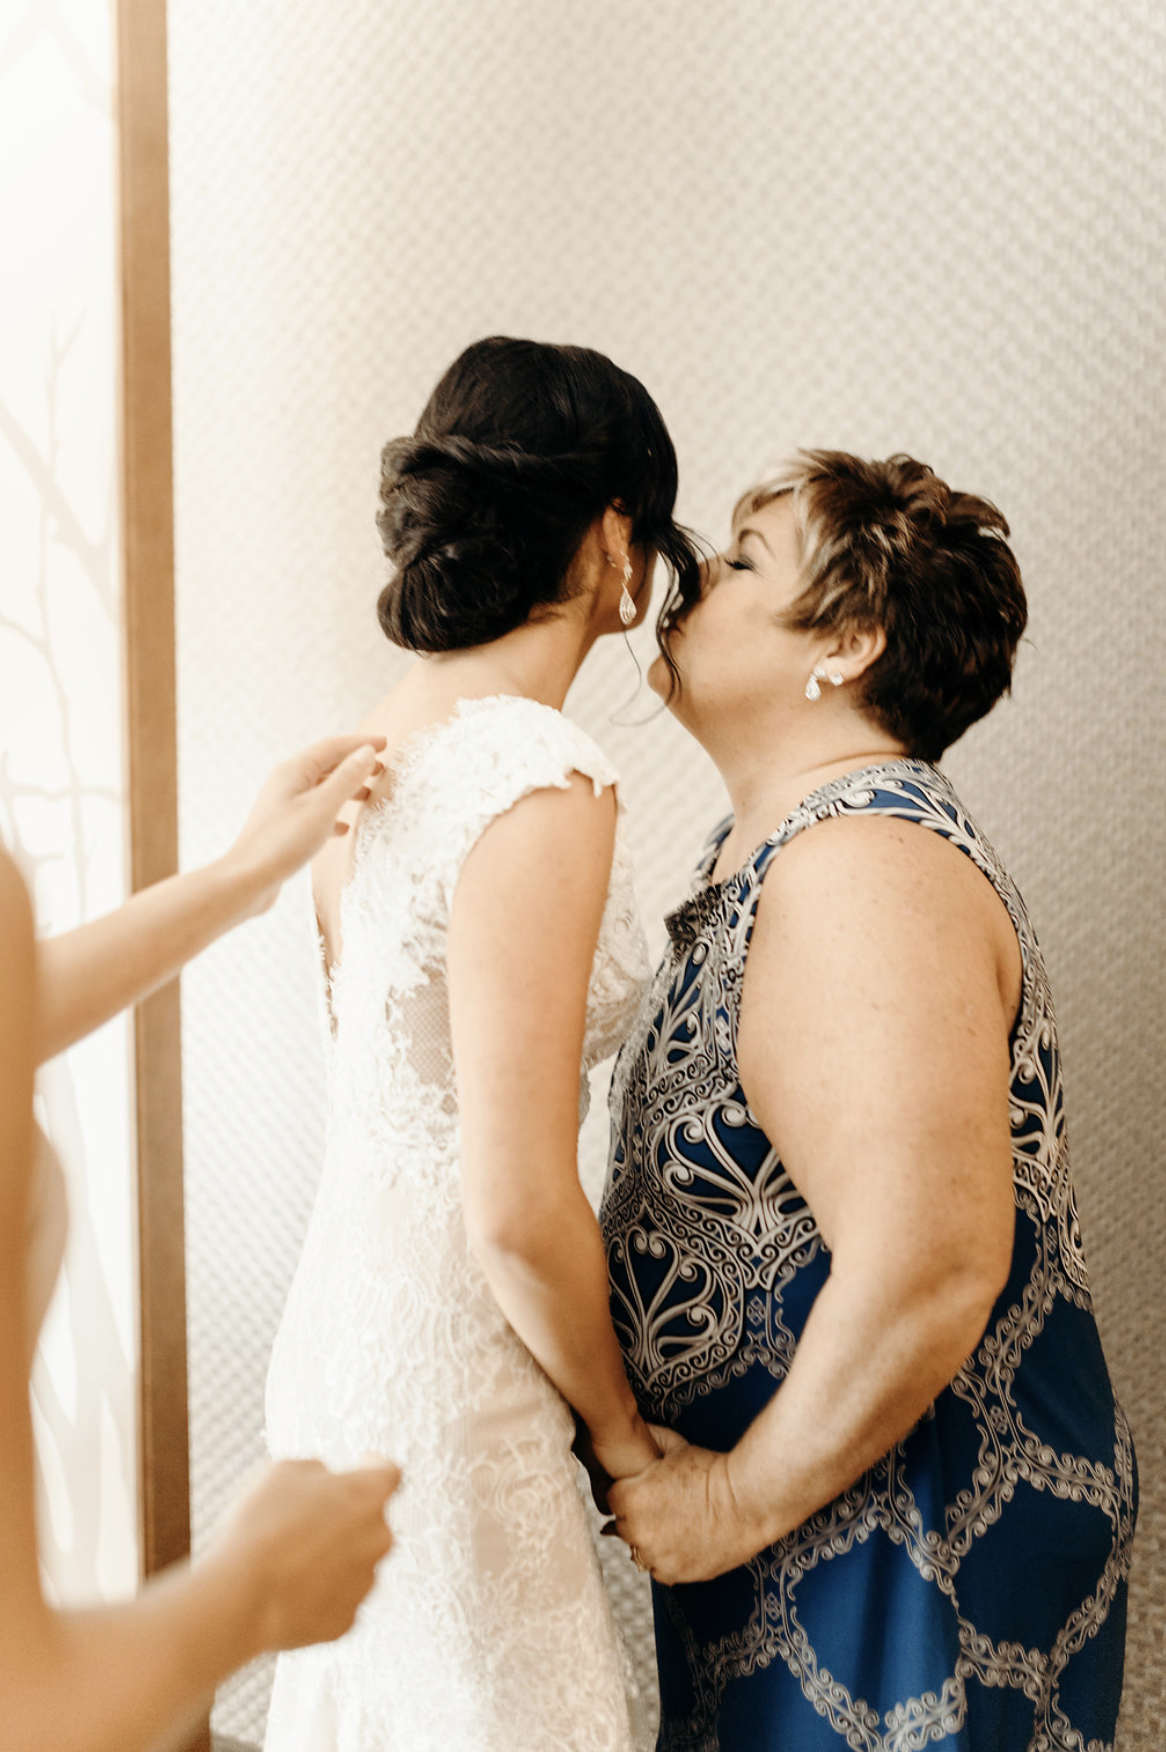 Valerie-and-TJ-McConnell-Wedding-Coordination-by-Cassandra-Clair-Event-Prep-Pittsburgh-Wedding-16.png